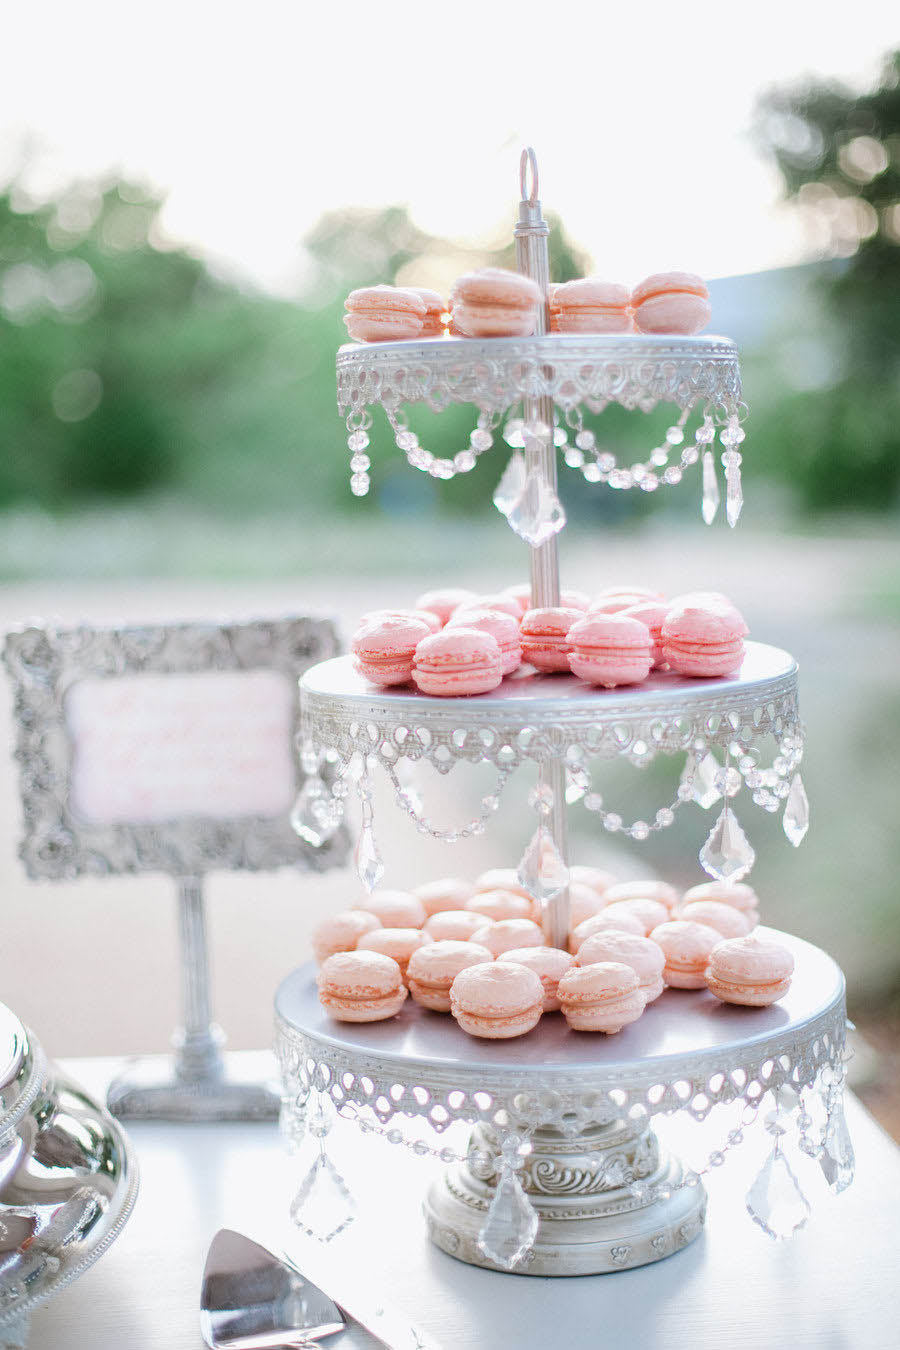 silver chandelier macaron stand with pink macarons